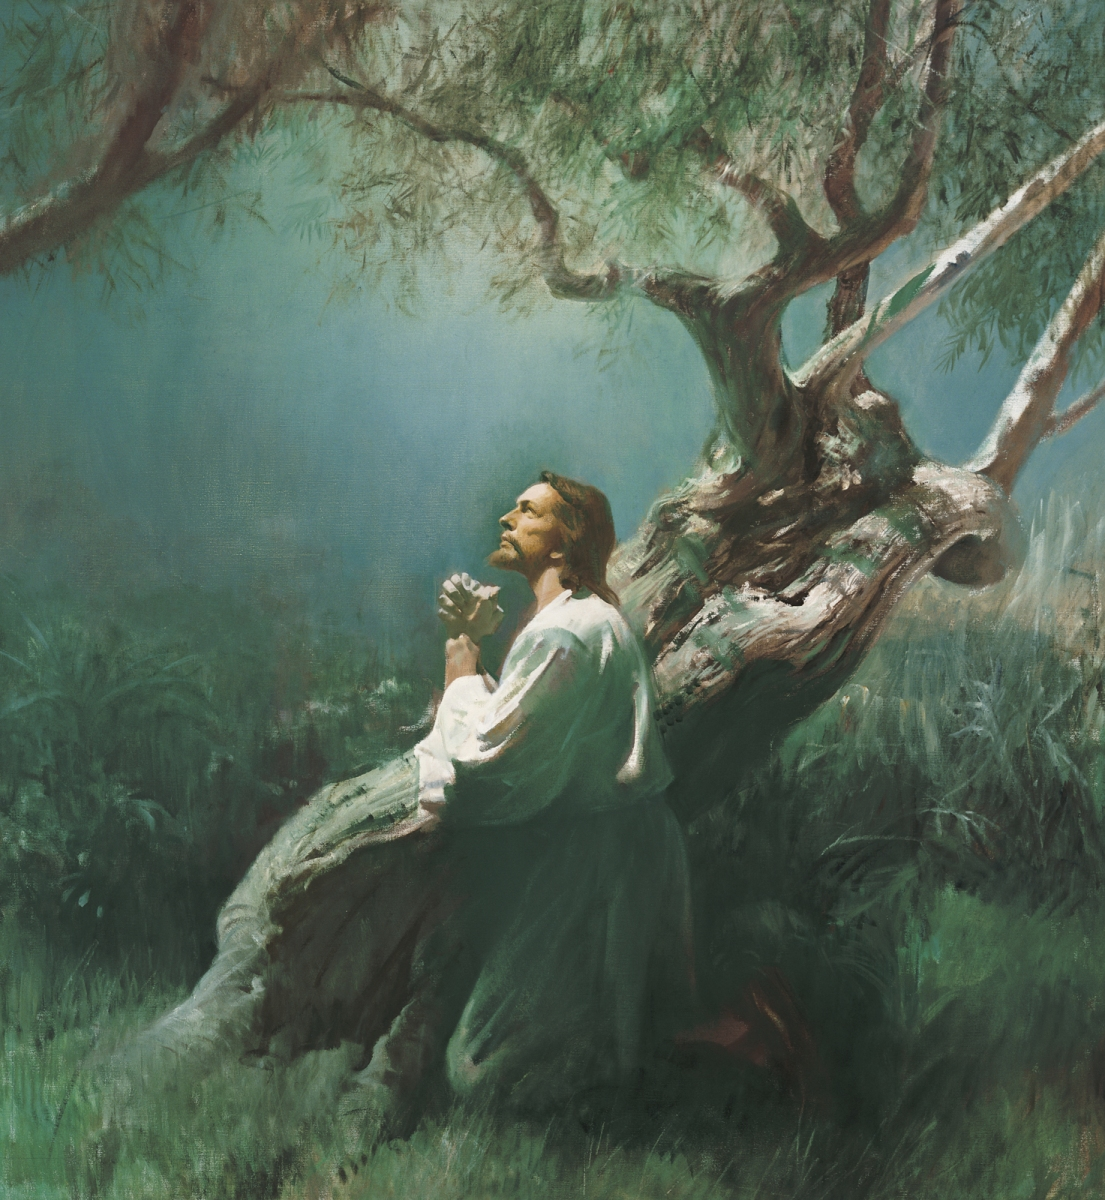 Gethsemane Song and Book